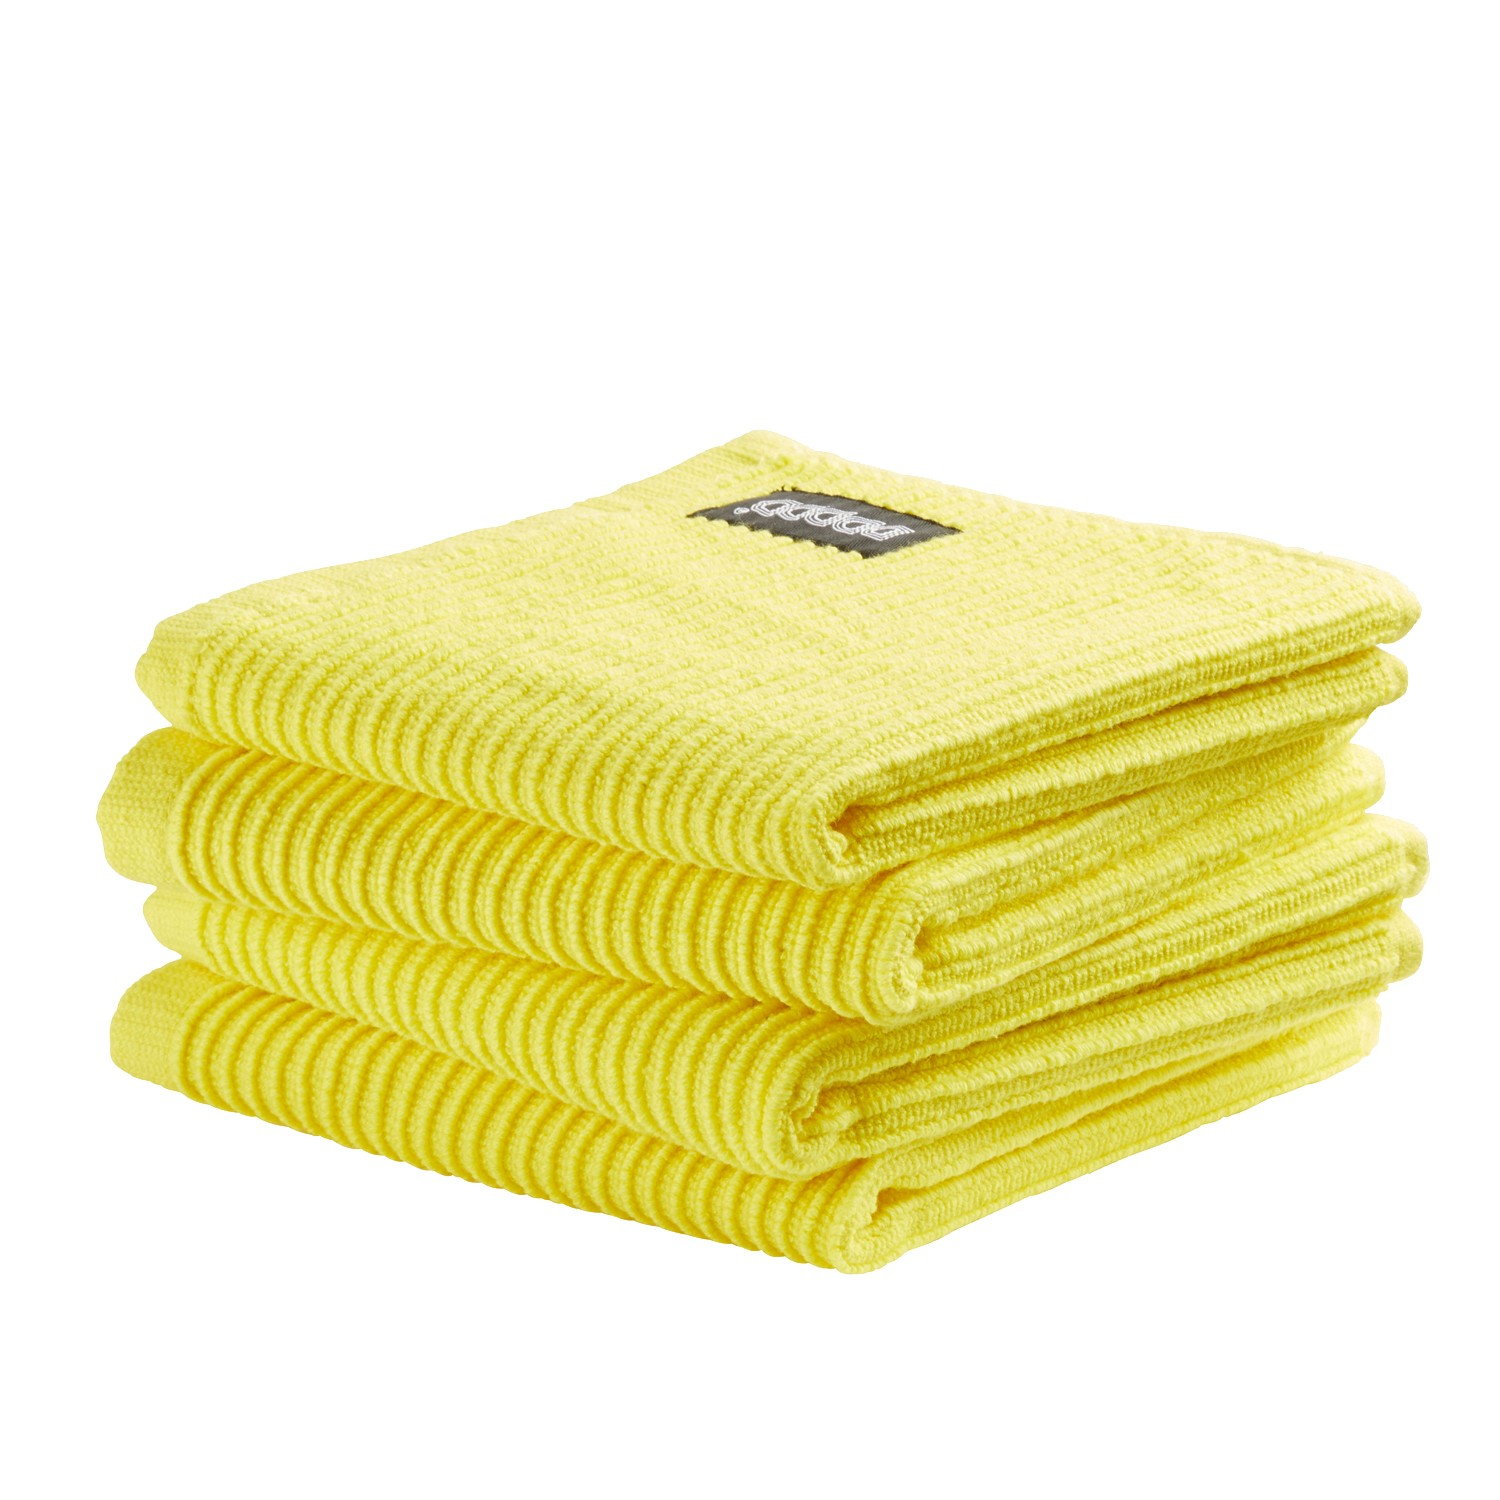 Vaatdoek Basic Clean | Bright yellow | 30 x 30 cm